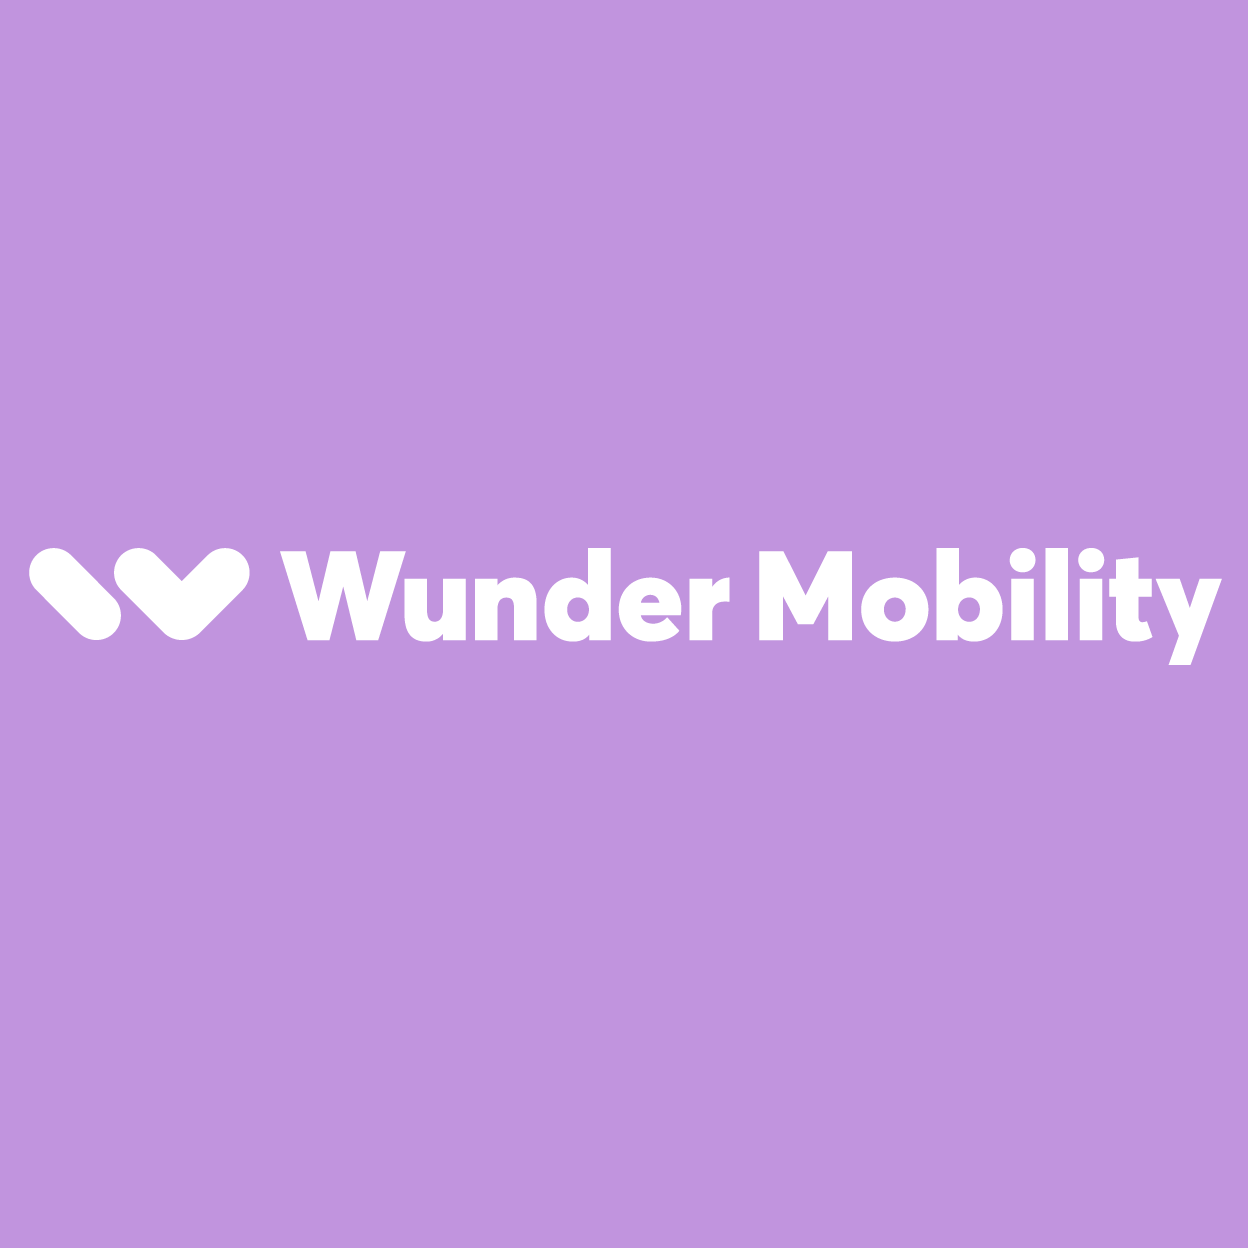 Wunder, backed by Blumberg Capital, is the leader in urban ride-sharing in the emerging markets, focusing specifically on Eastern Europe, Eurasia and South America.